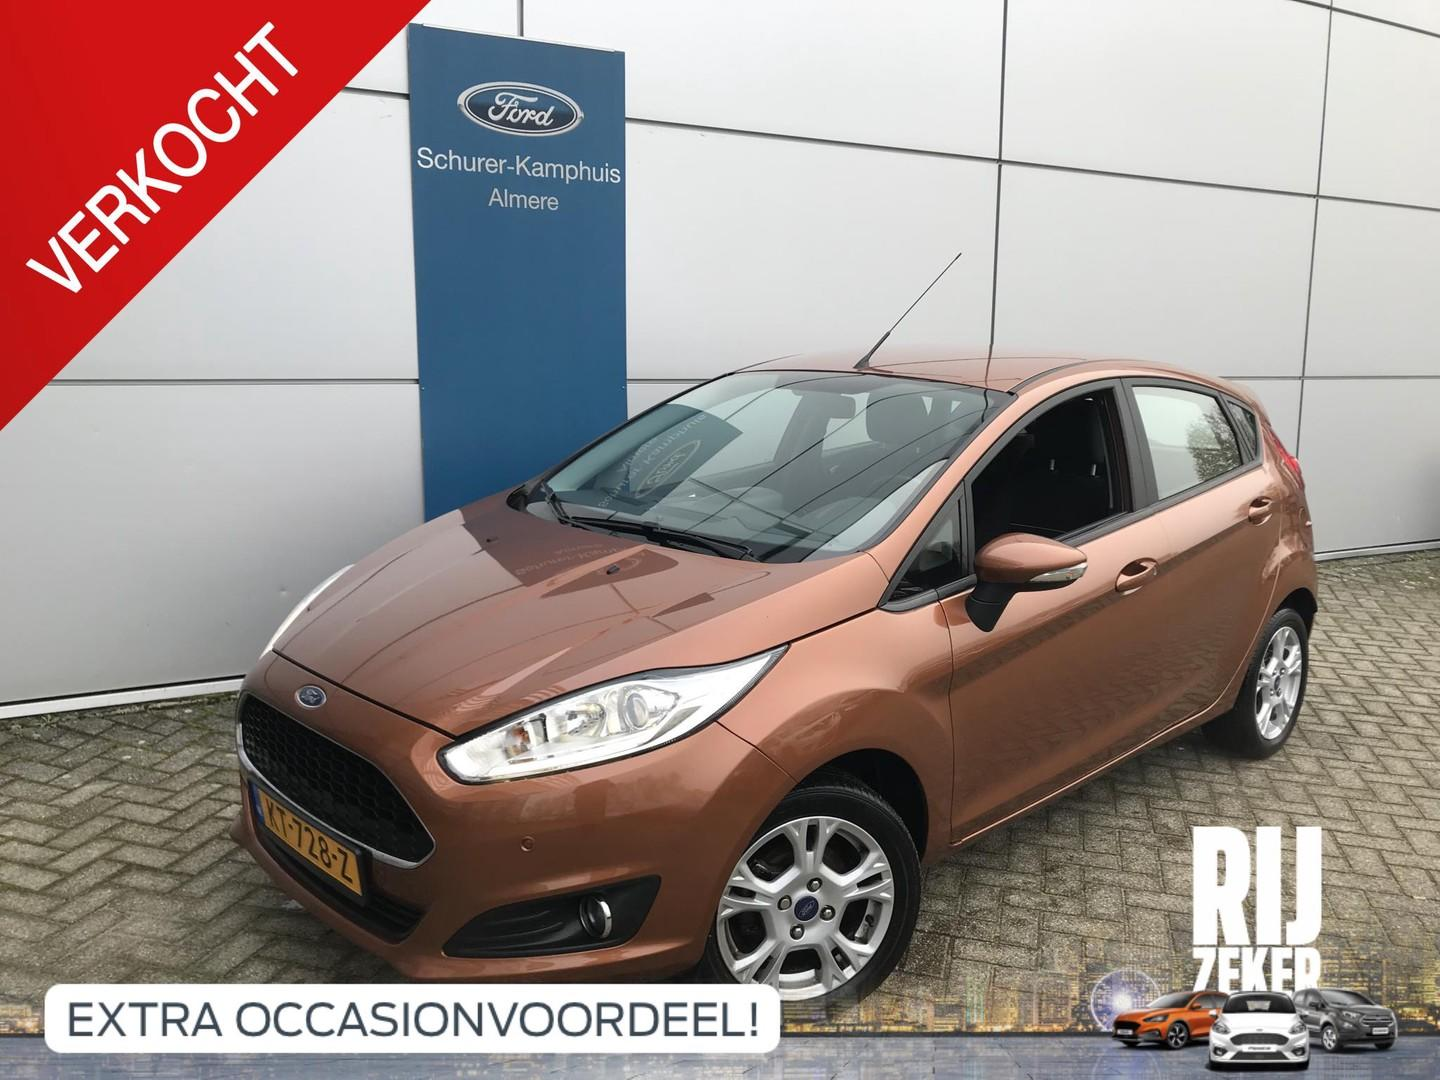 Ford Fiesta 1.0 80pk style ultimate 5d